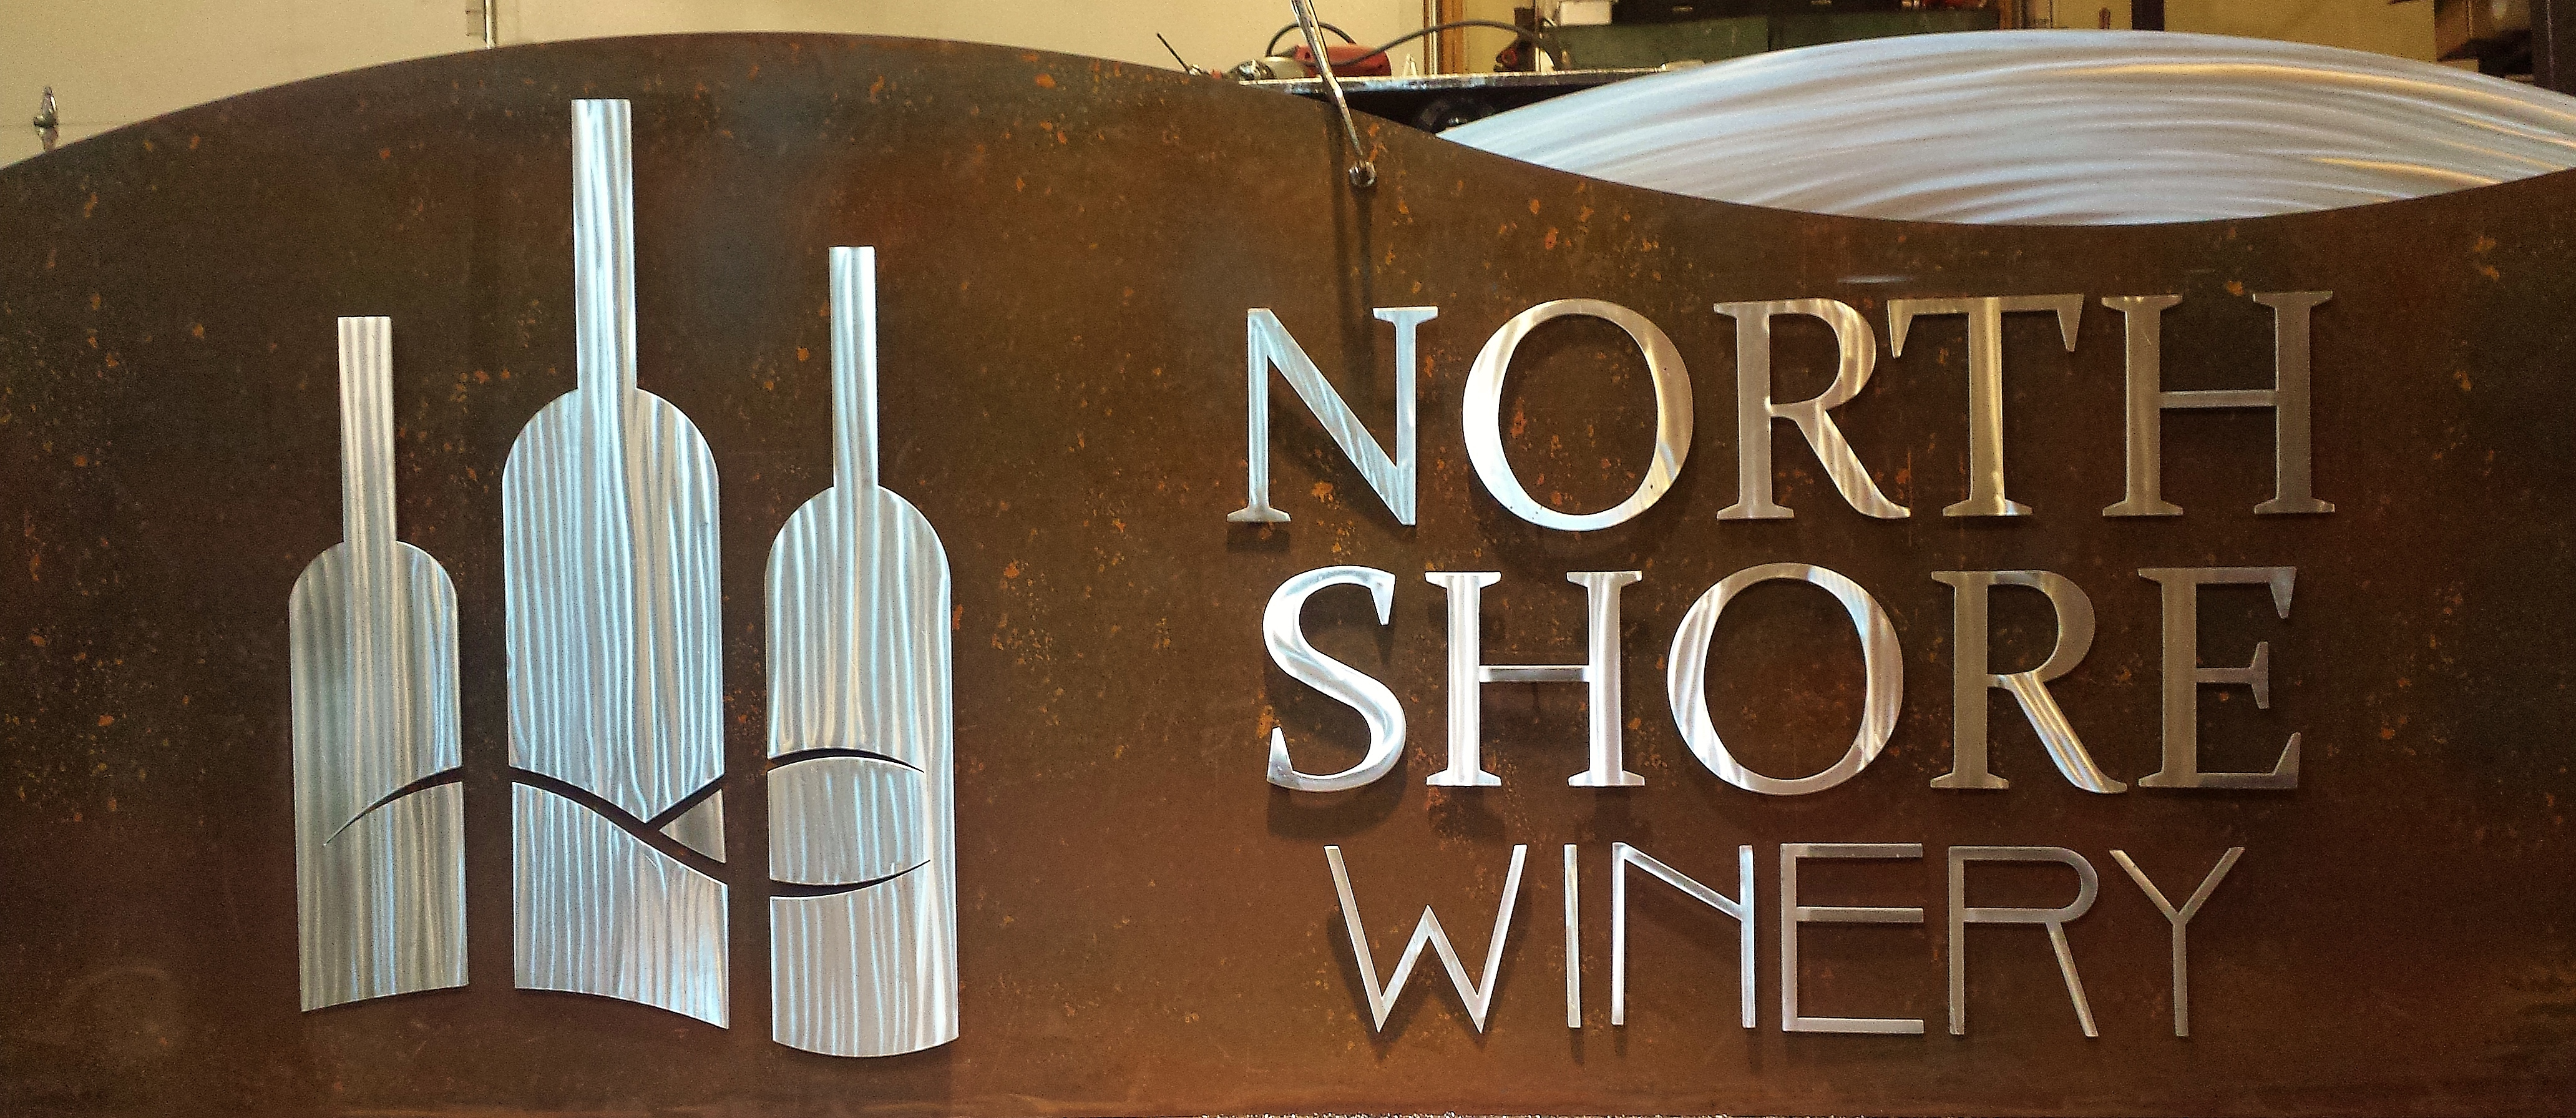 north-shore-winery-sign-1.jpg